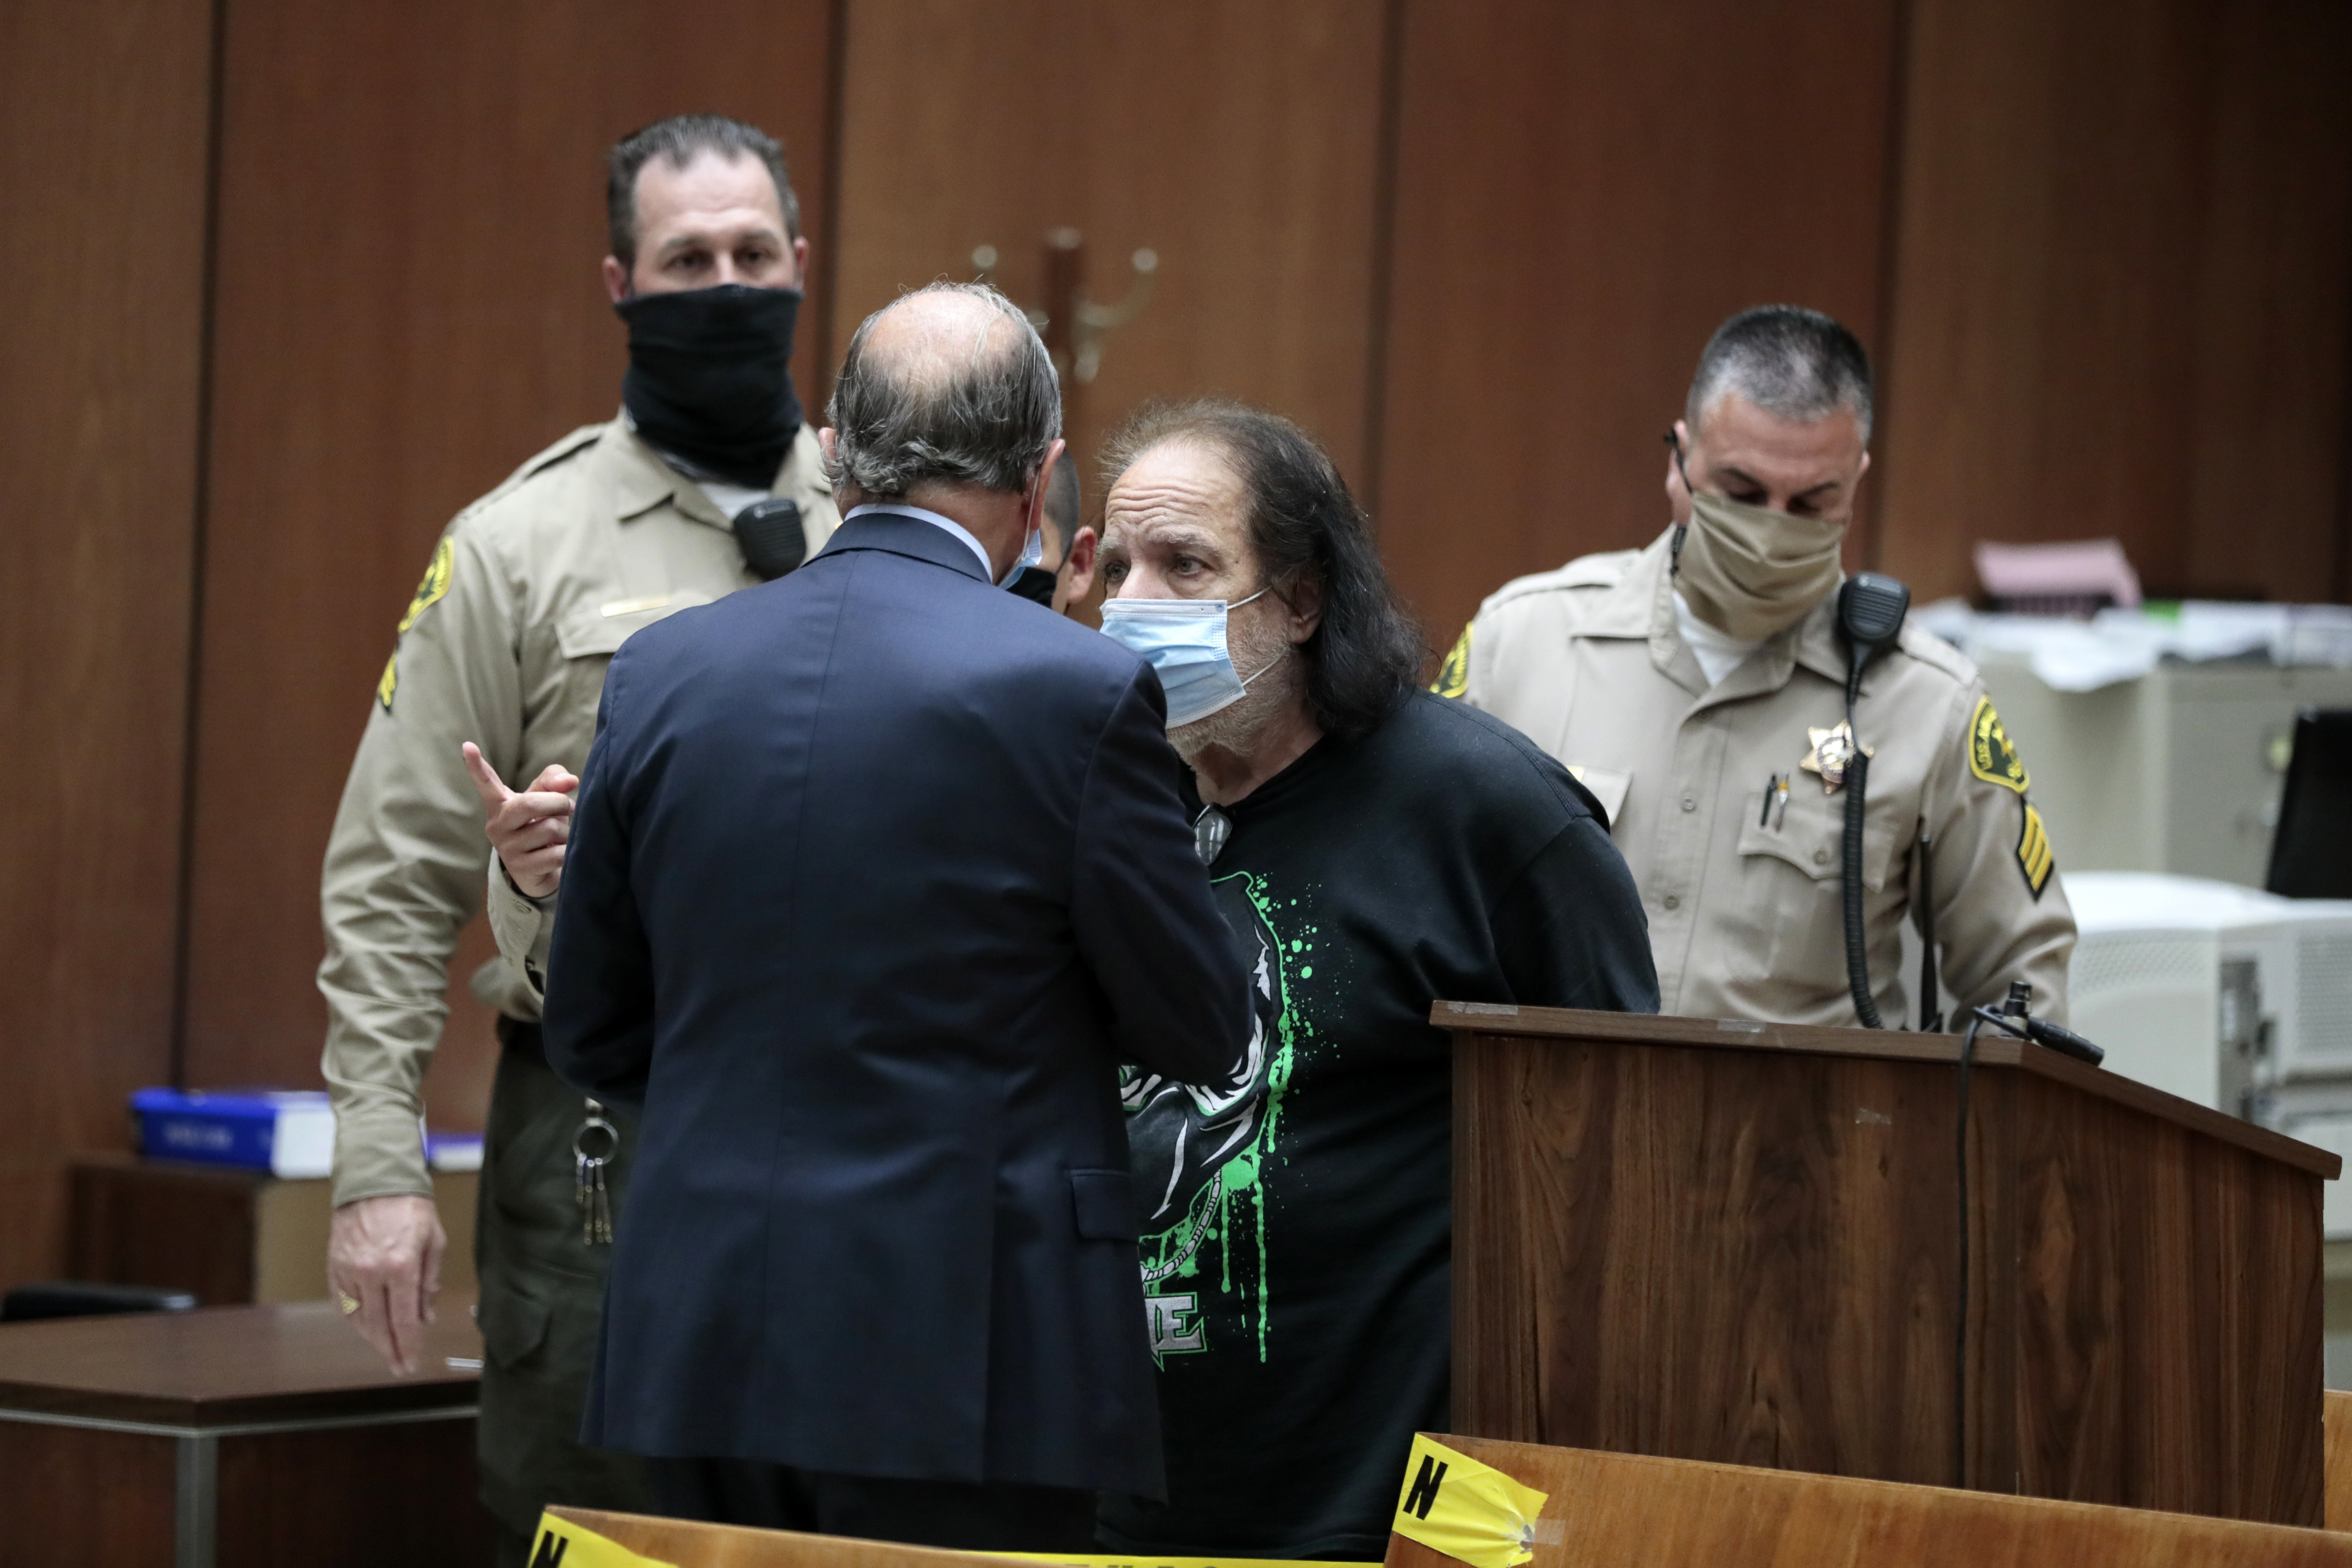 Adult film star Ron Jeremy, center, speaks to his attorney Stuart Goldfarb, during his first appearance at Los Angeles Superior Court in Los Angeles on Tuesday, June 23, 2020. Los Angeles County prosecutors say Jeremy has been charged with raping three women and sexually assaulting a fourth. (Robert Gauthier/Los Angeles Times via AP, Pool)